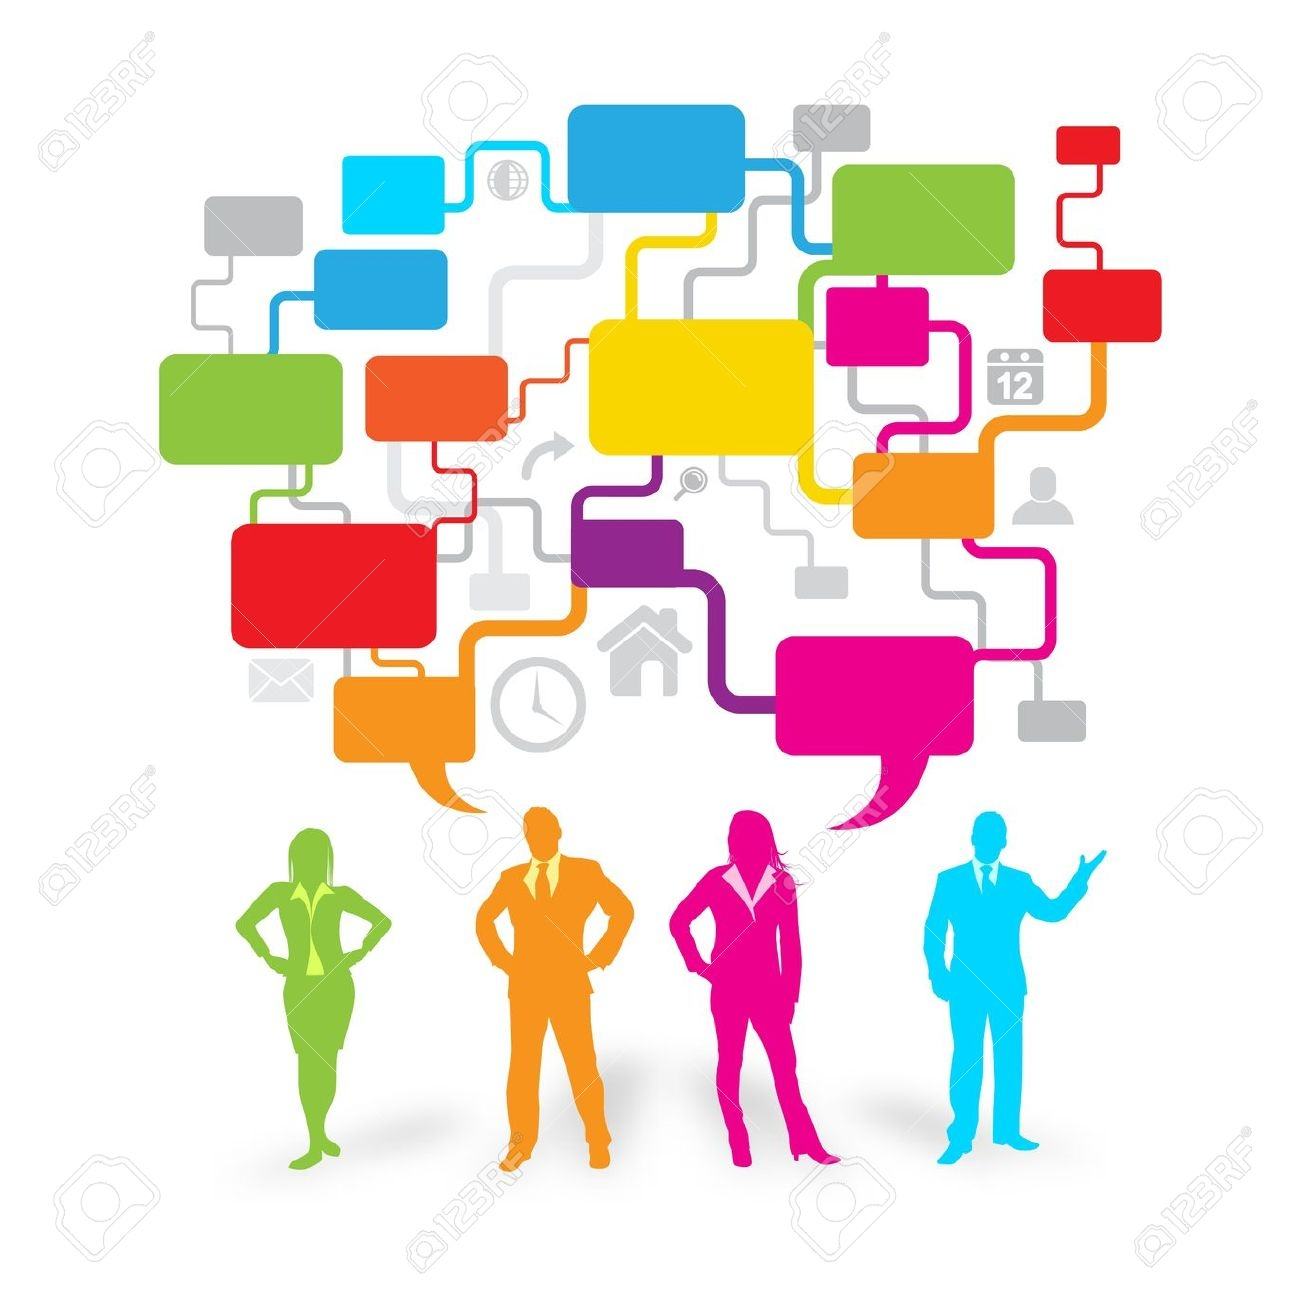 Communicating free download best. Collaboration clipart effective communication